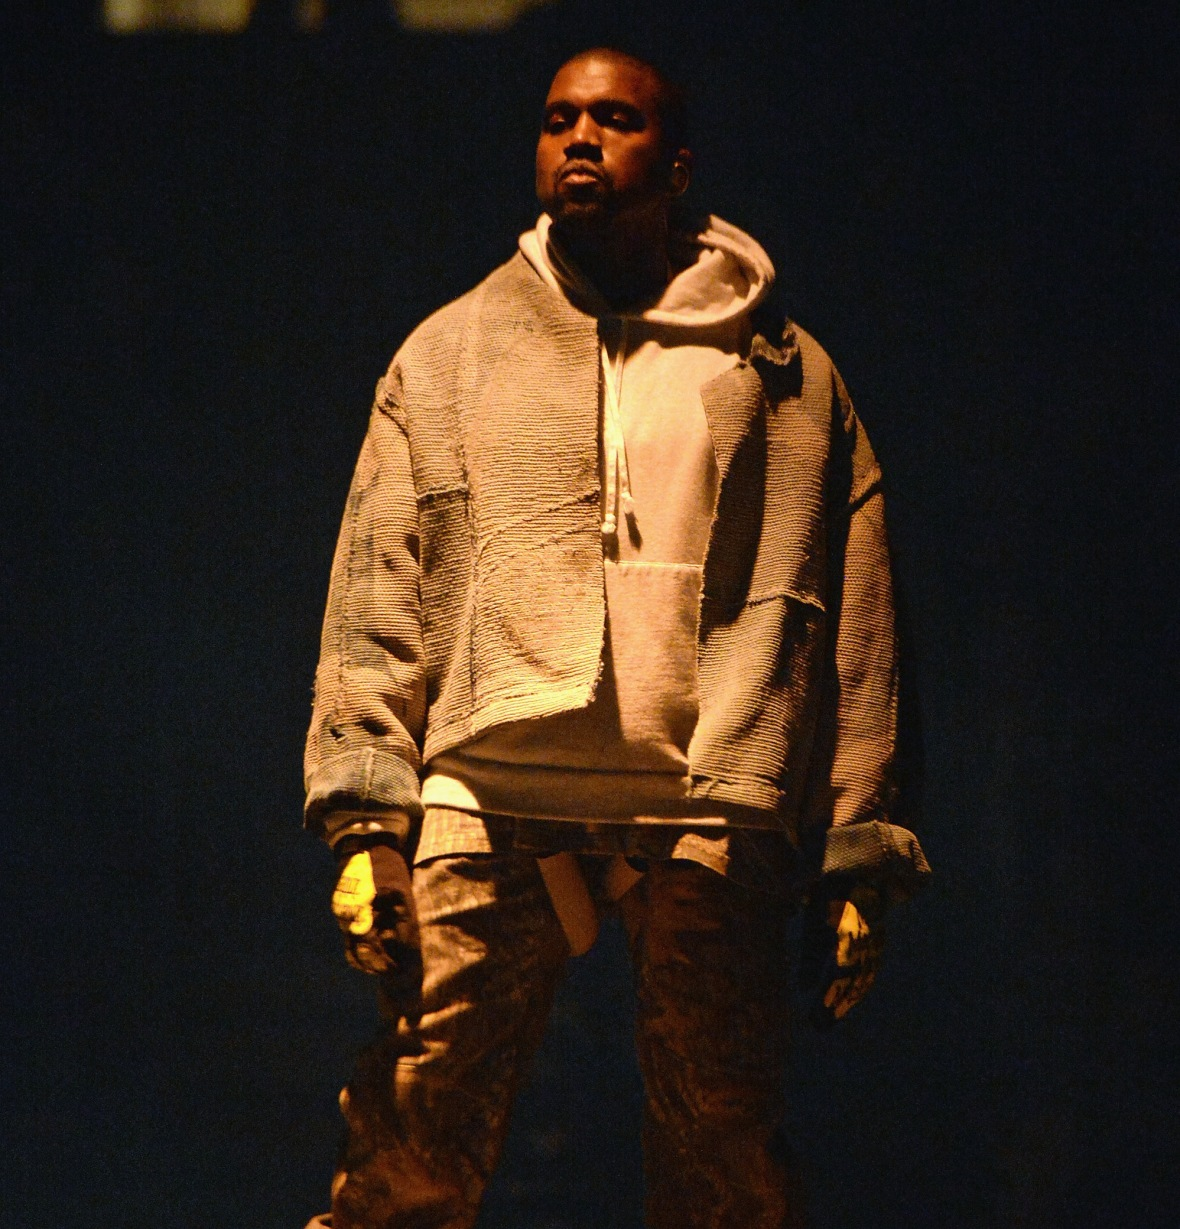 kanye west getty images